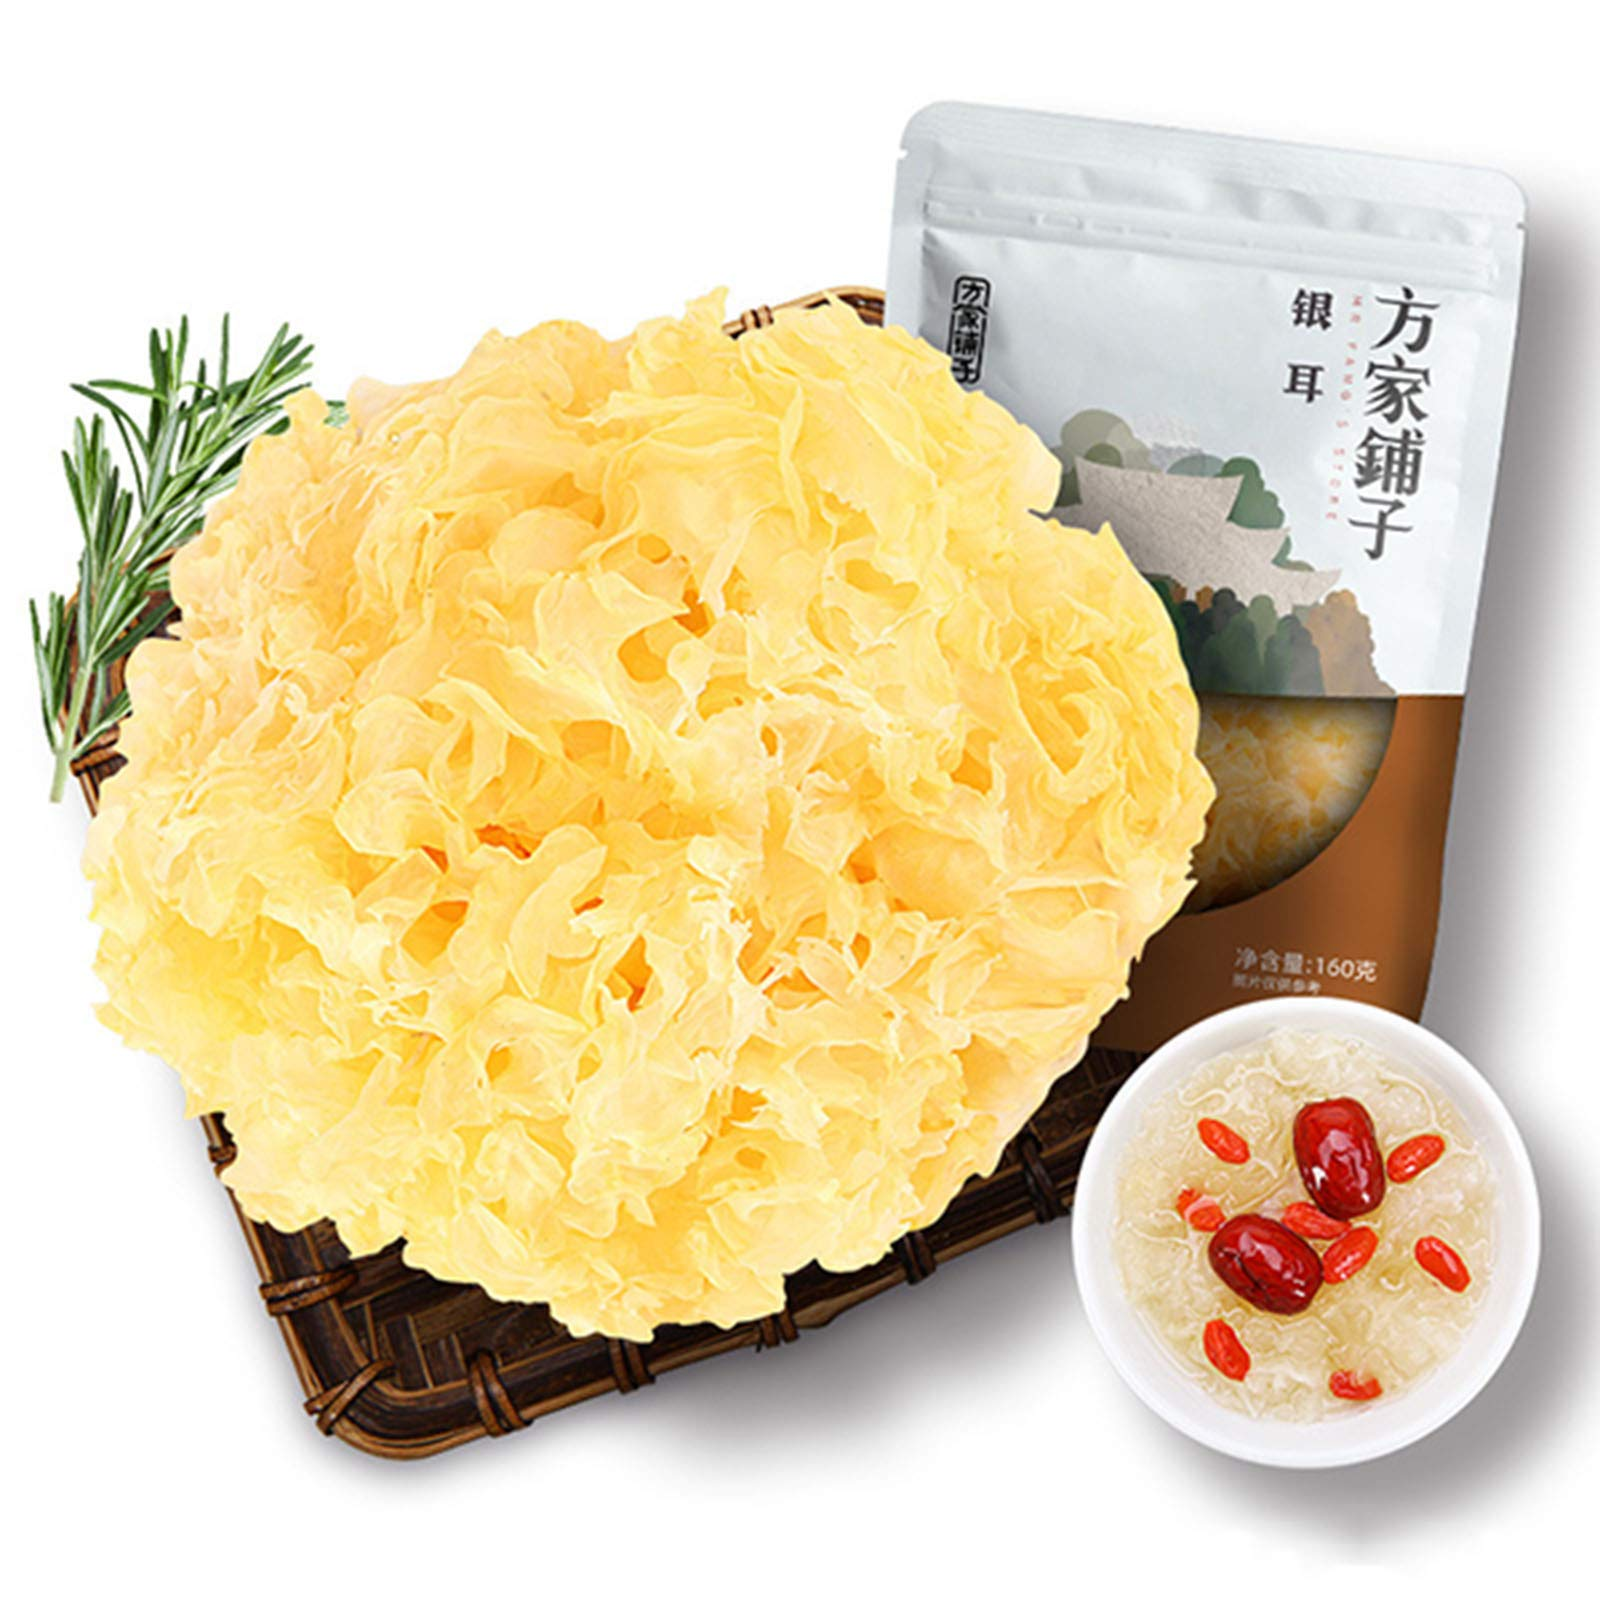 Tremella White Fungus Snow Fungus, Hardcover Dry Goods, Physical Preservation Independent Installation, Natural No Bleaching Sulfur-free, Premium Grade 5.7 Oz Bag (0.36lb)